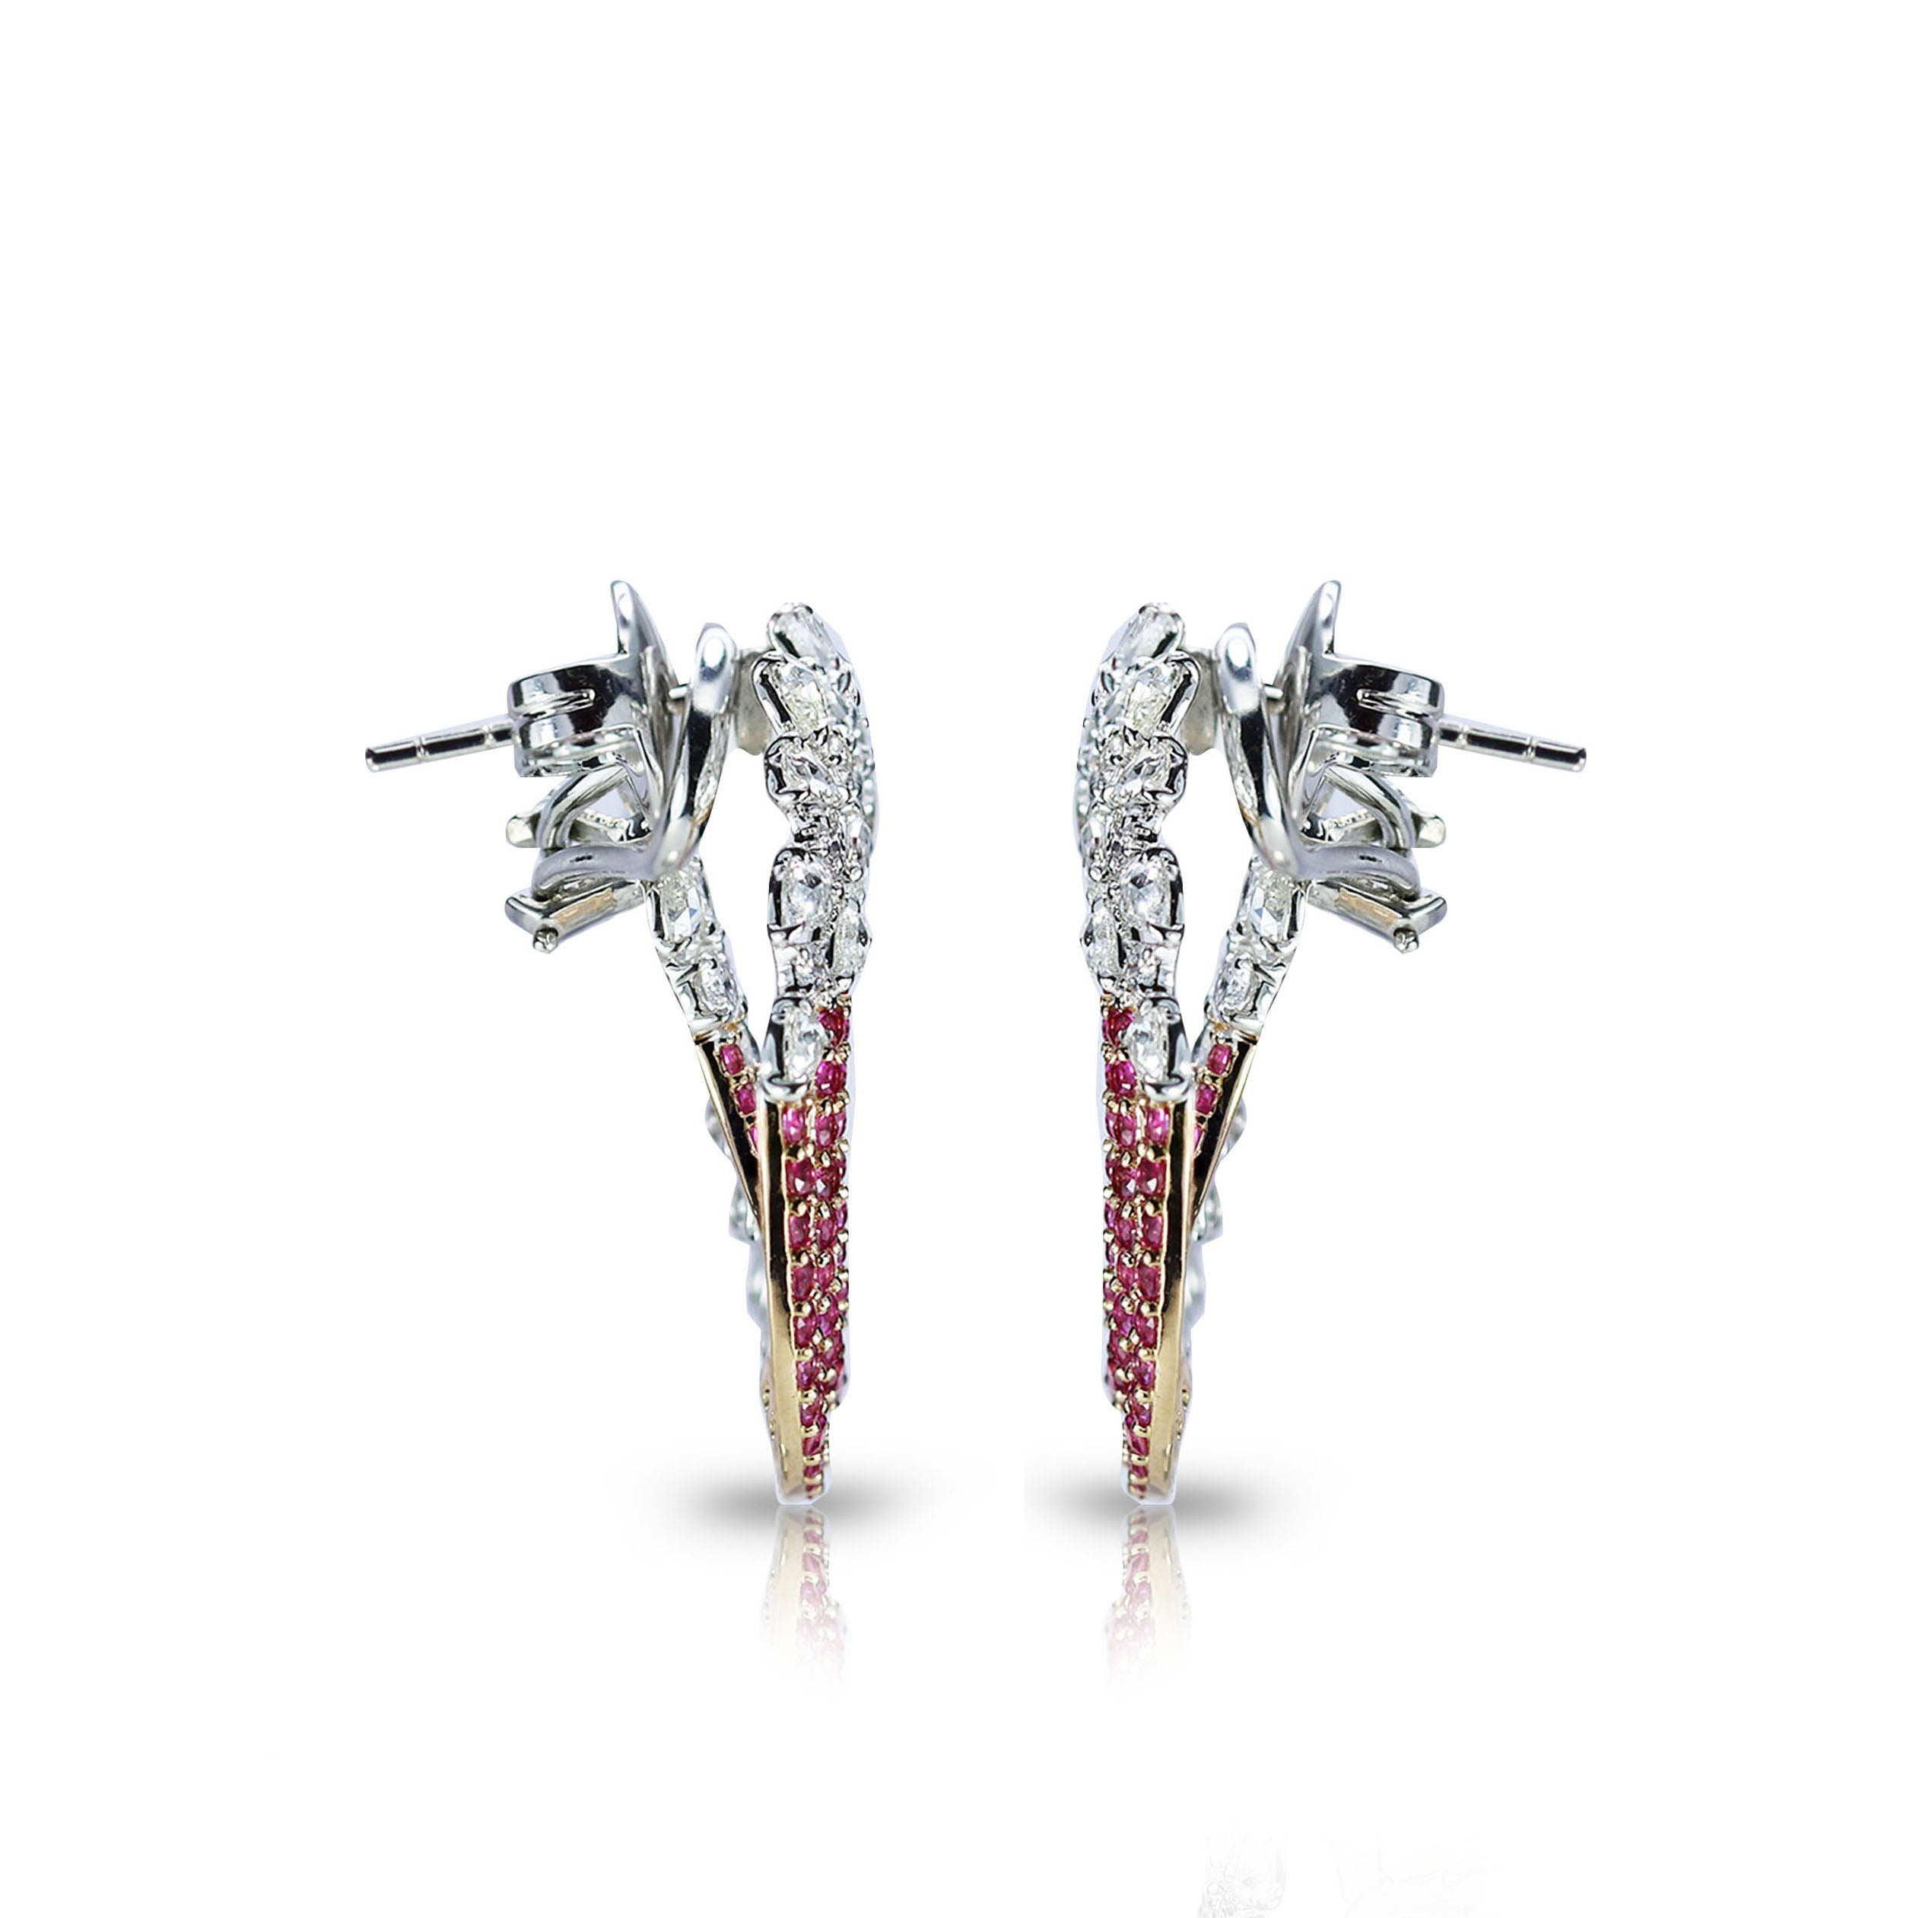 Studio Rªves 18 Karat Gold Diamond and Pink Sapphire Earrings For